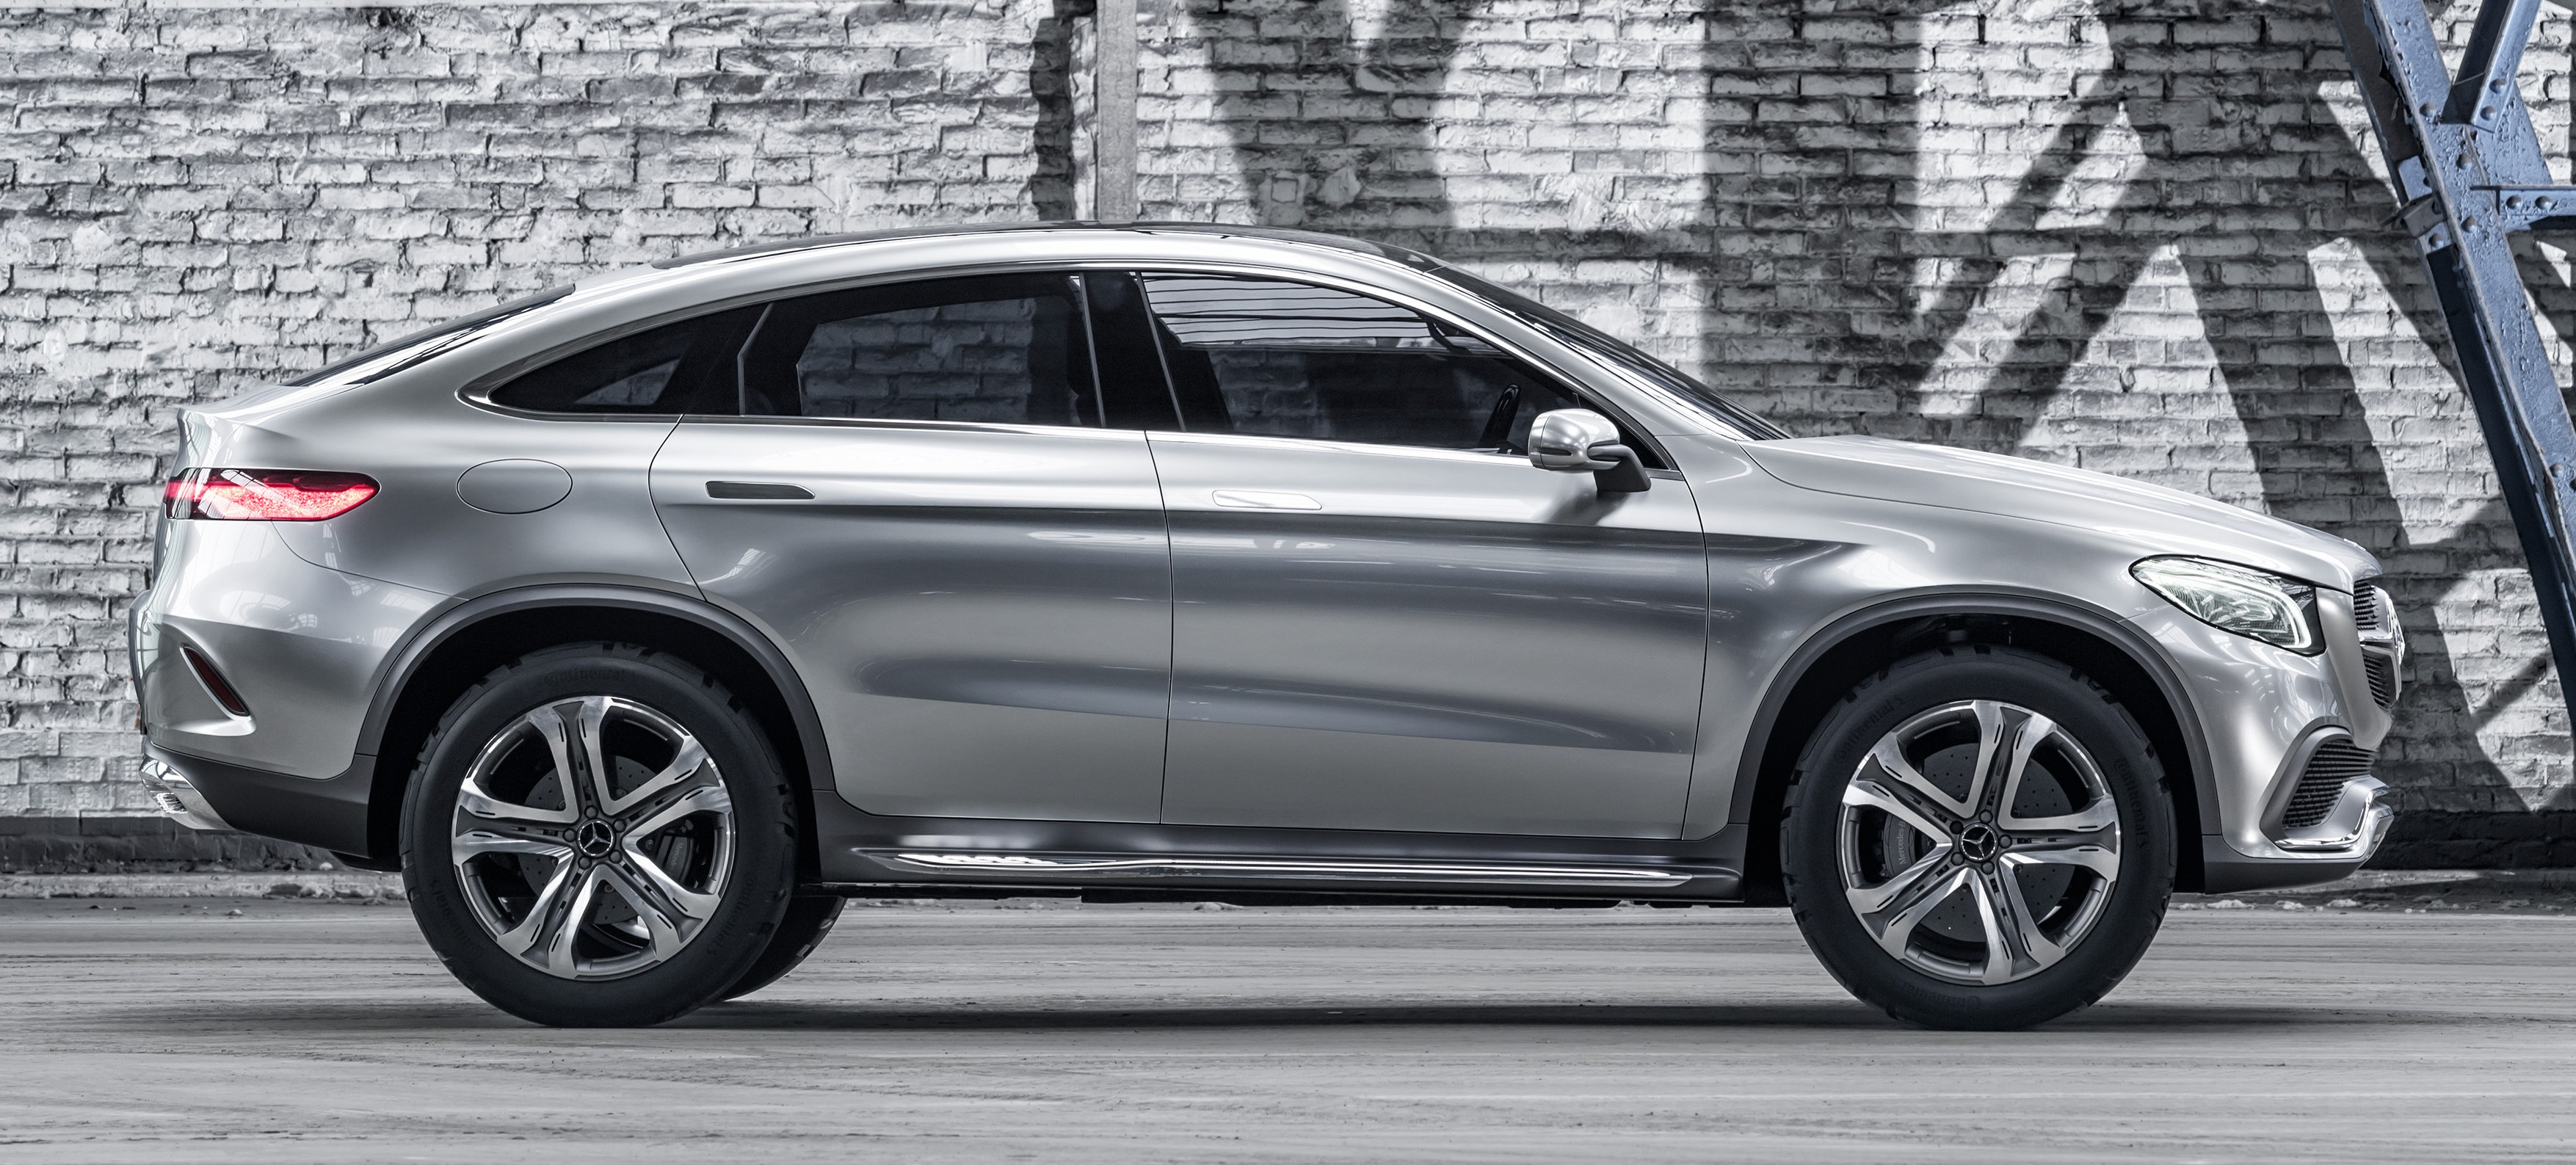 Mercedes benz coupe suv concept previews x6 rival image 242559 for Mercedes benz x6